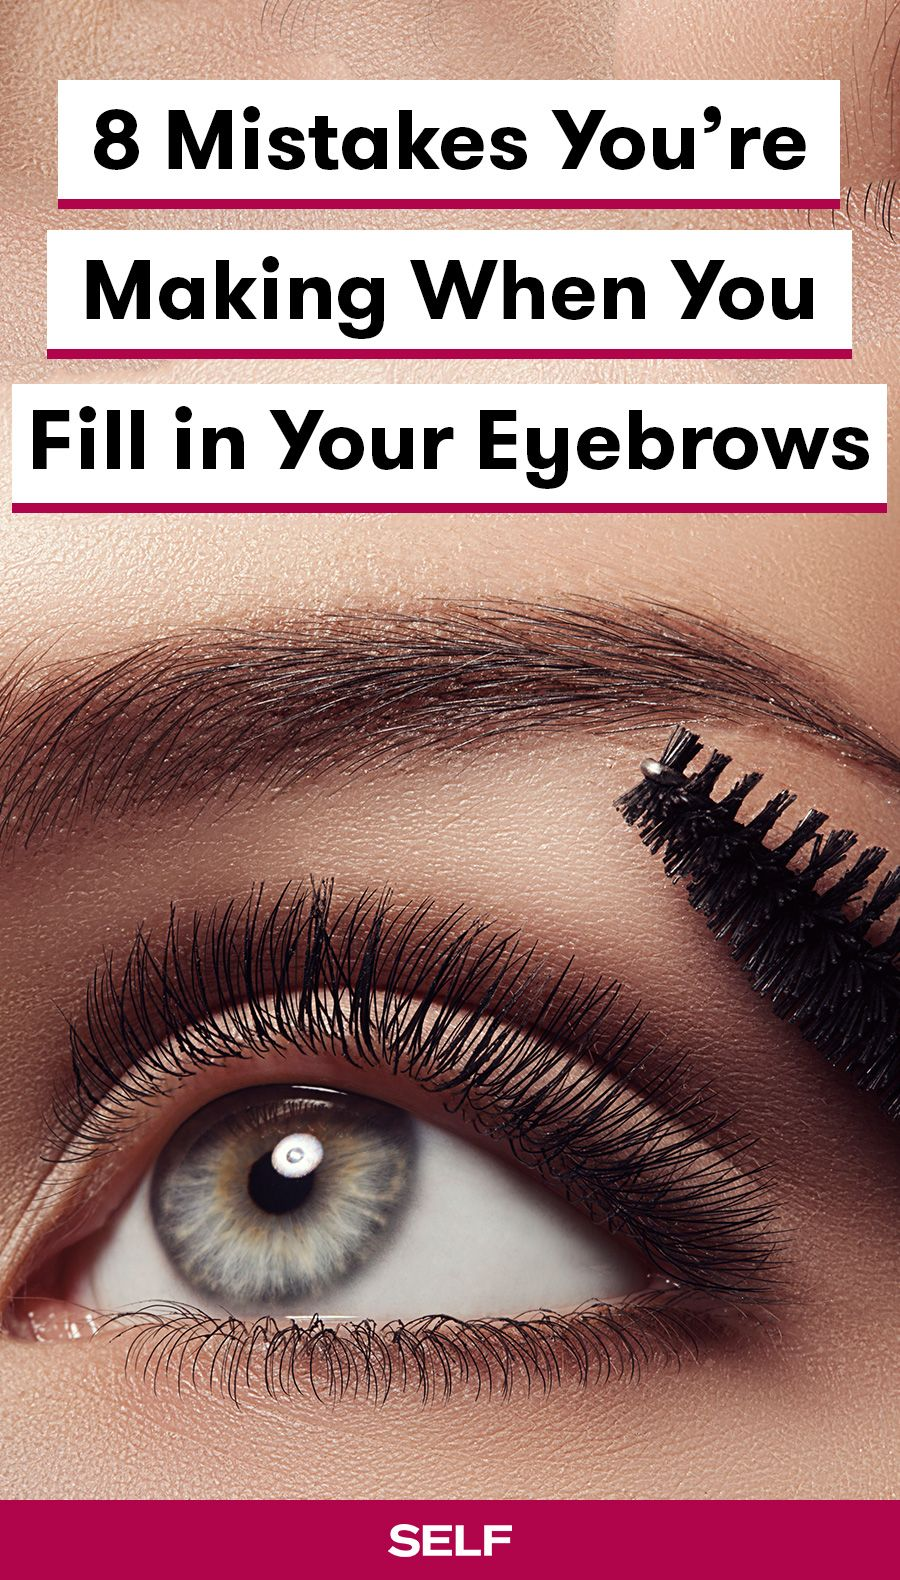 8 Mistakes You're Making When You Fill in Your Eyebrows ...